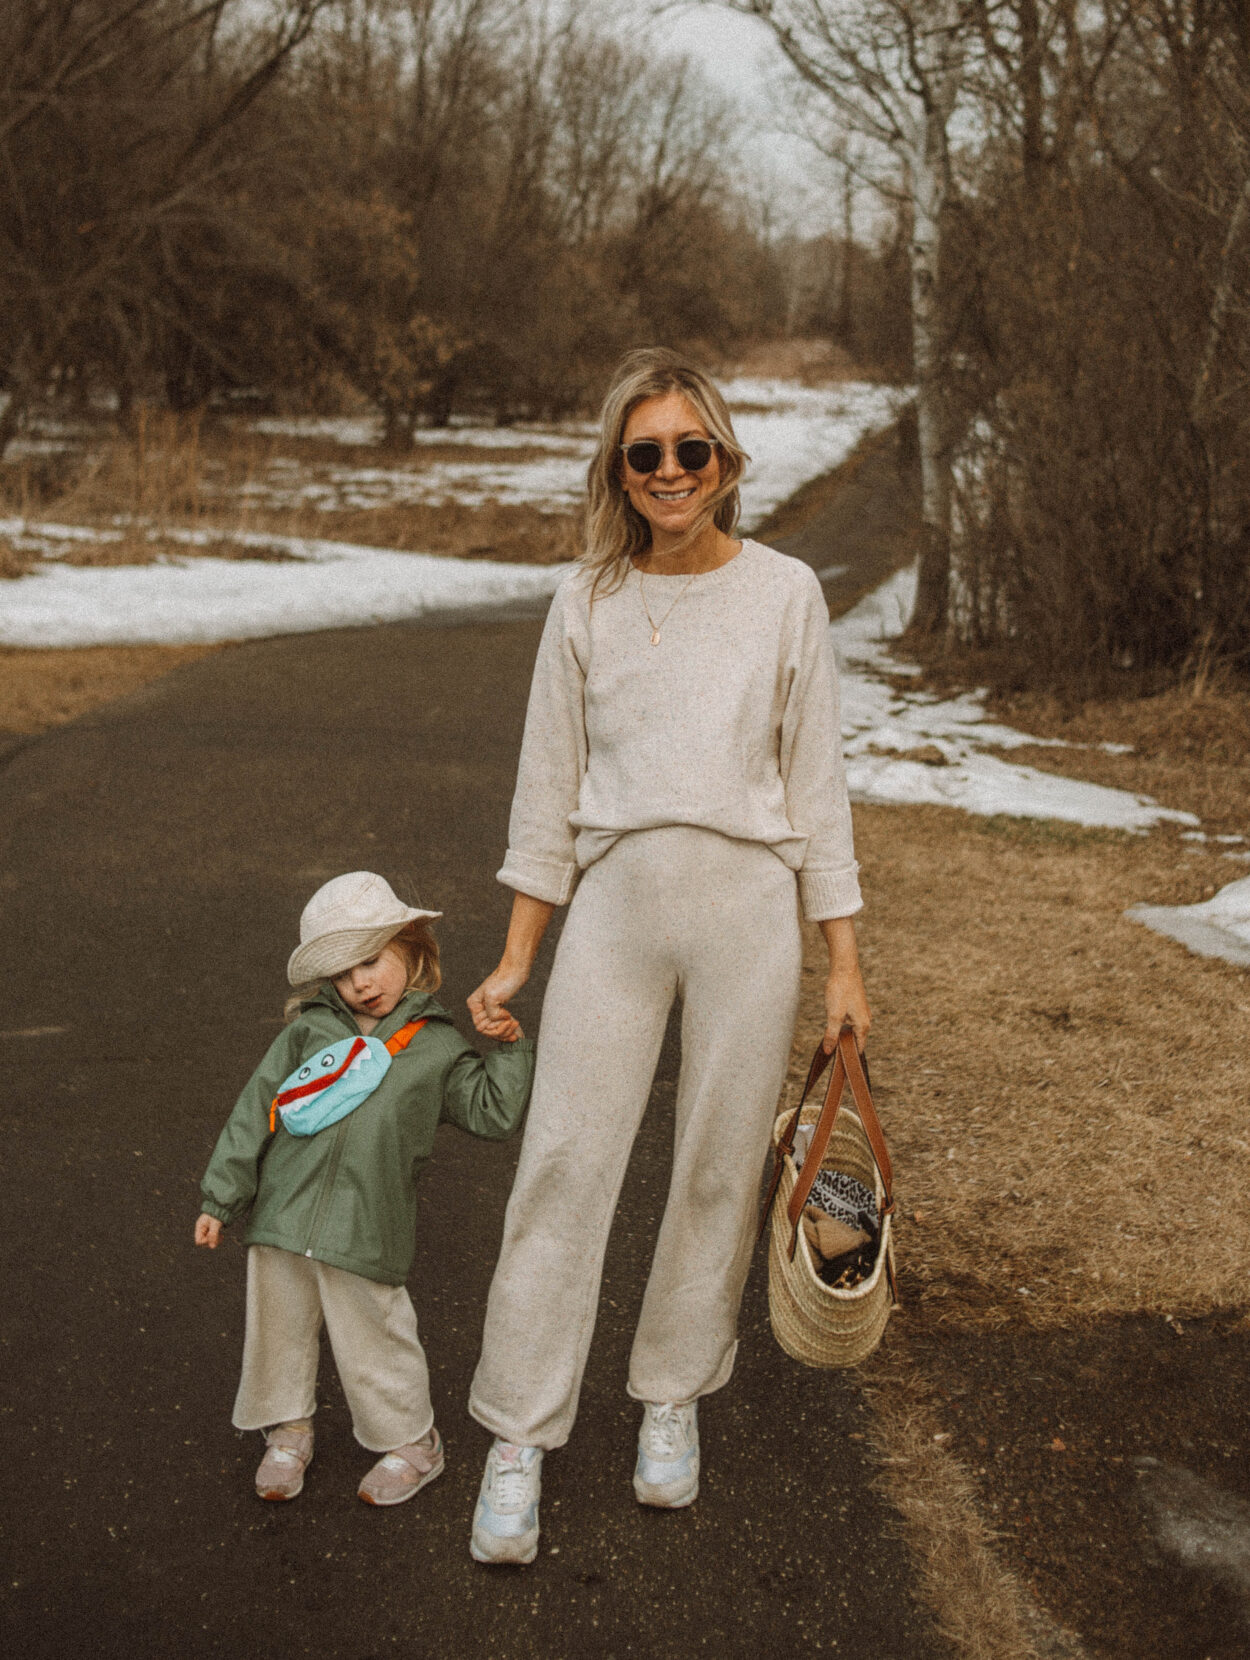 kid fanny packs, cozy knitwear set